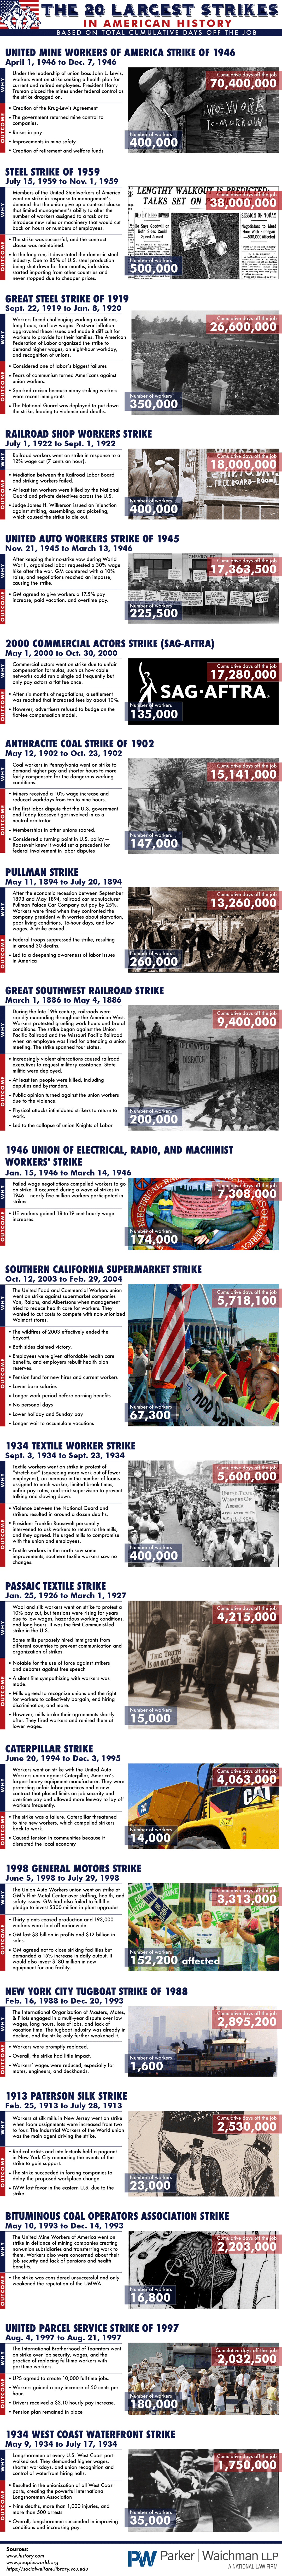 The 20 Largest Strikes in American History - YourLawyer.com - Infographic